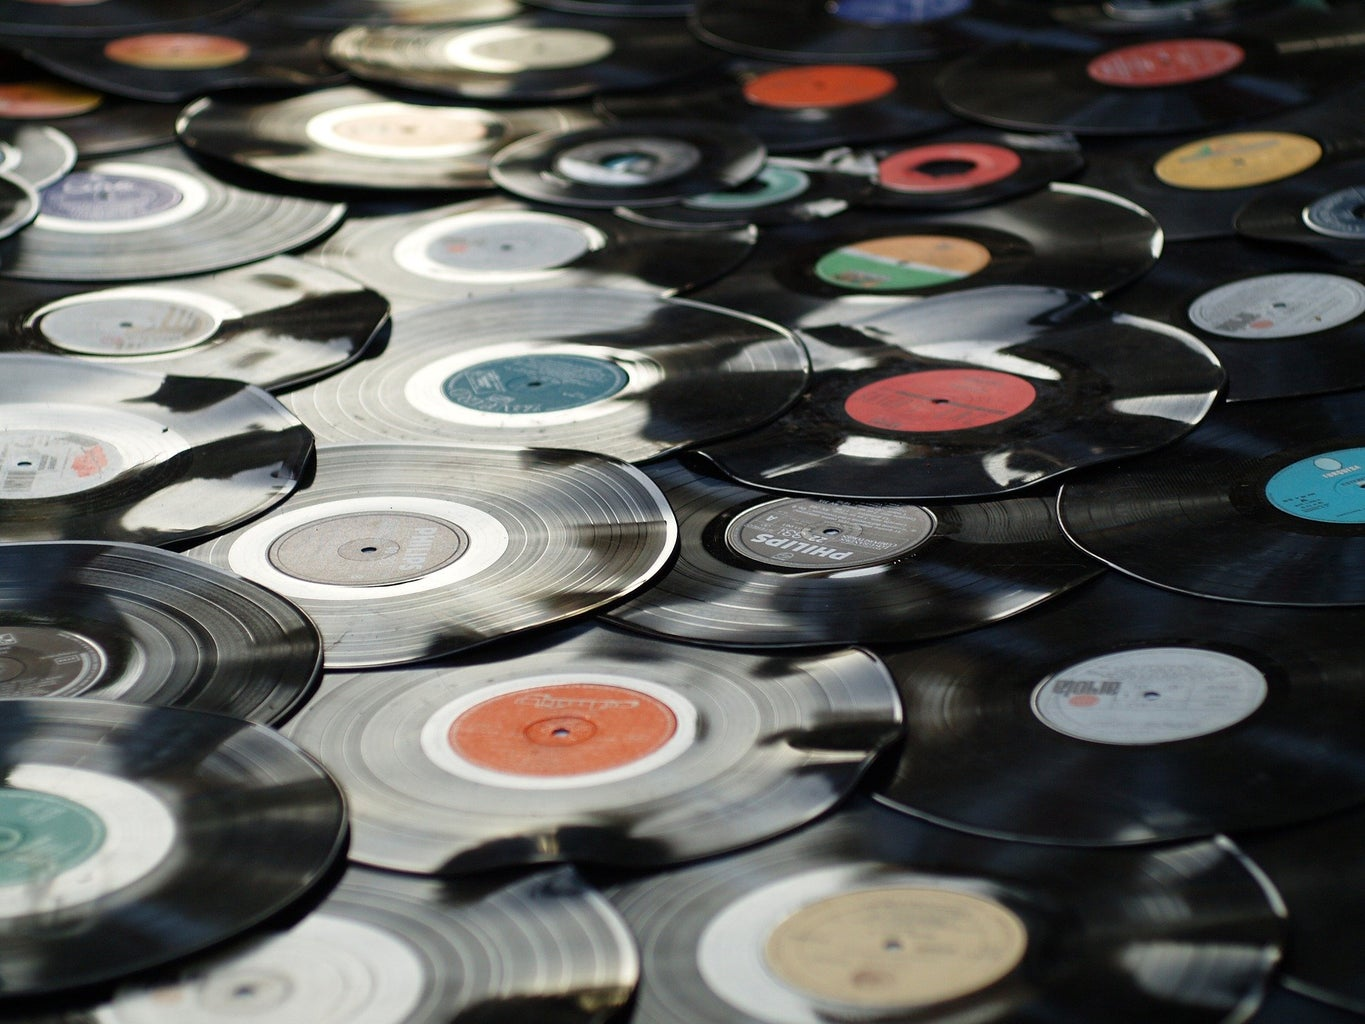 a pile of vinyl records